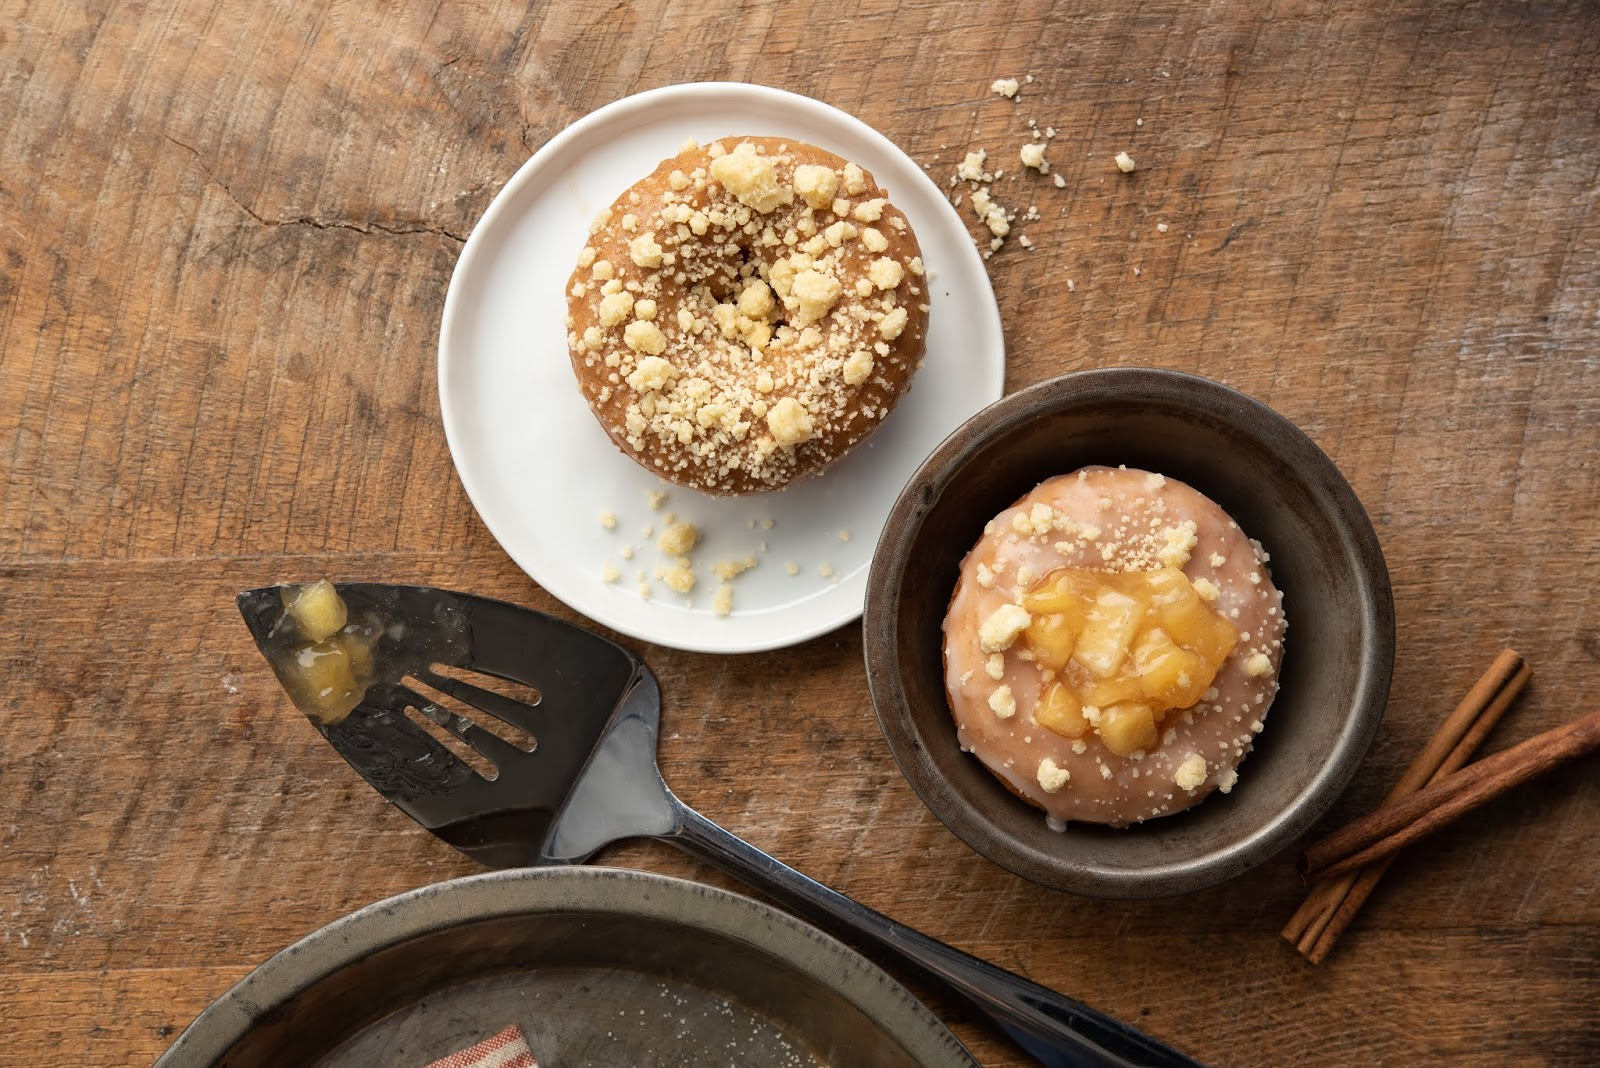 Duck Donuts Now Serves Warm Apple Pies As Donuts!